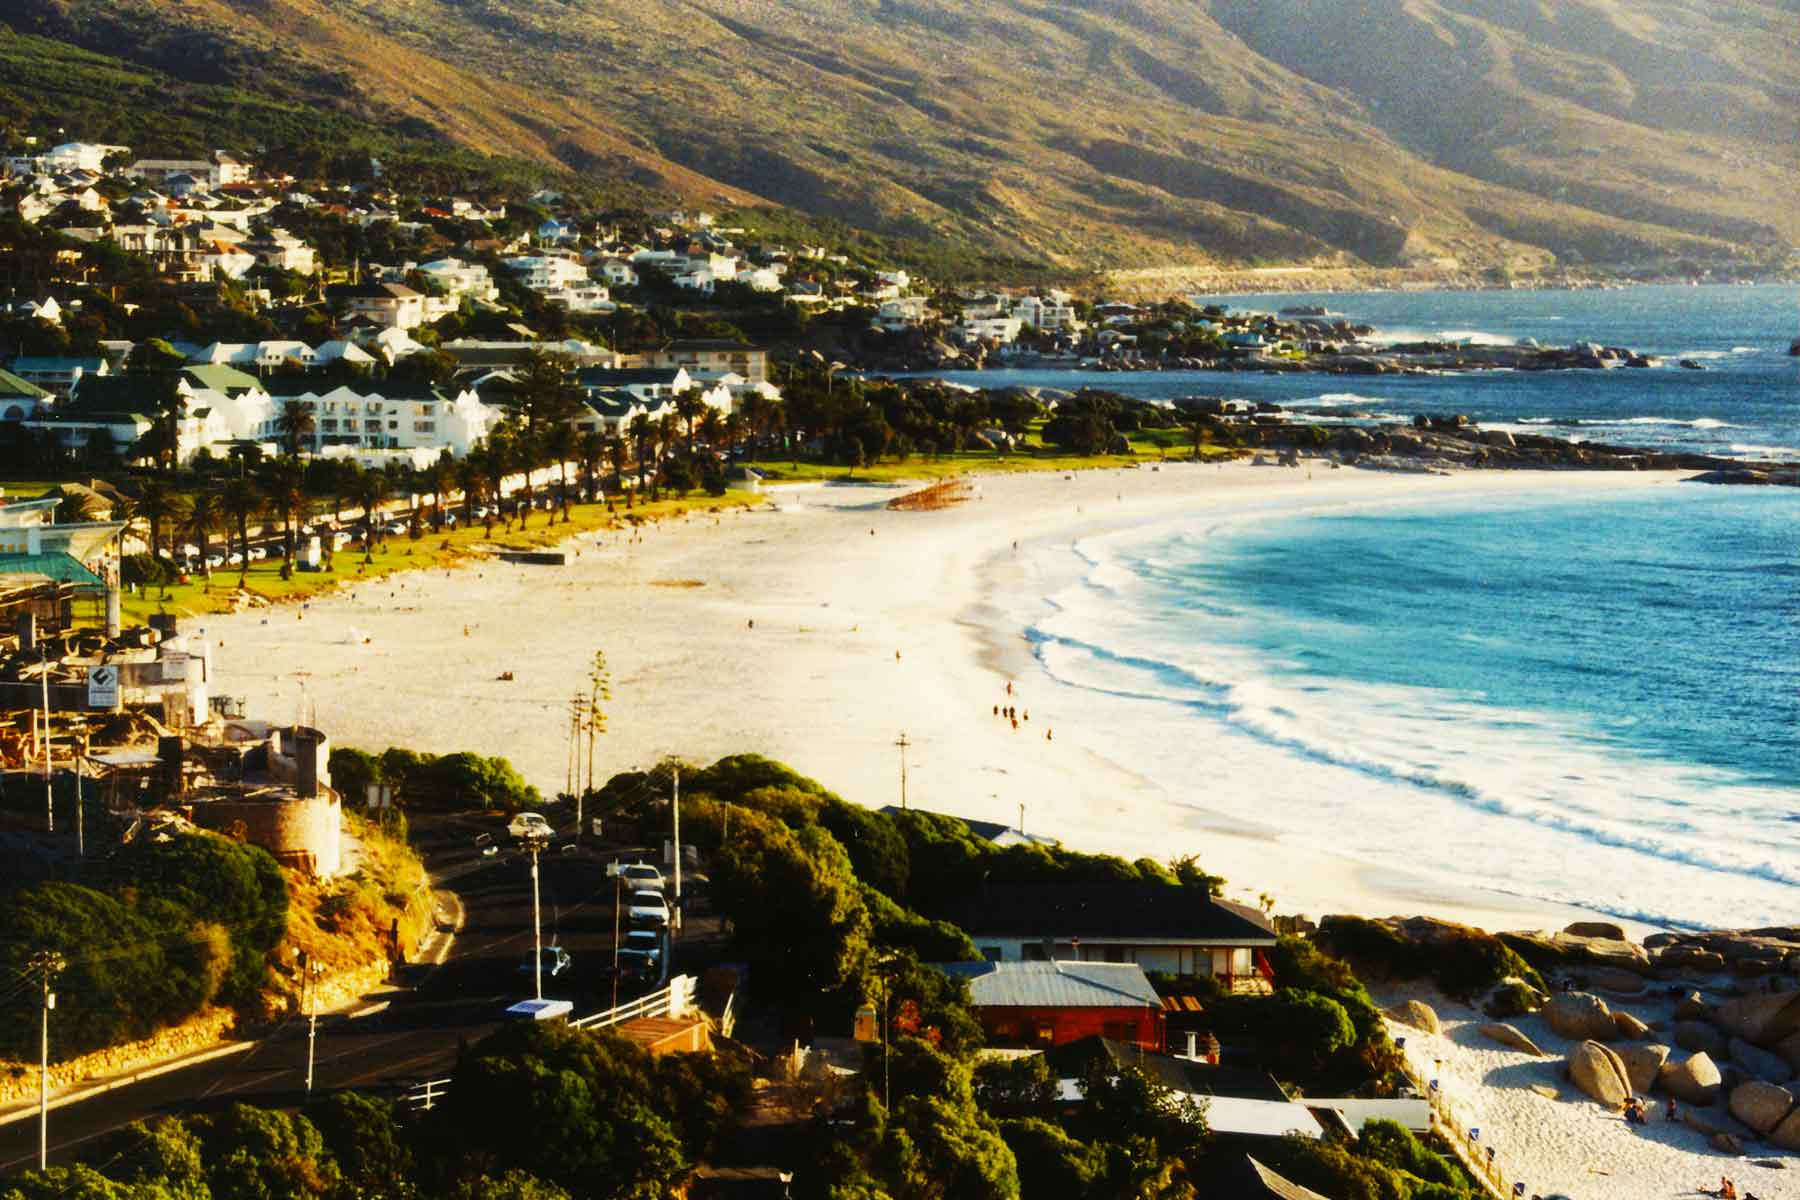 Camps Bay | Cape Town South Africa | Steven Andrew Martin PhD | Study Abroad Photo Journal